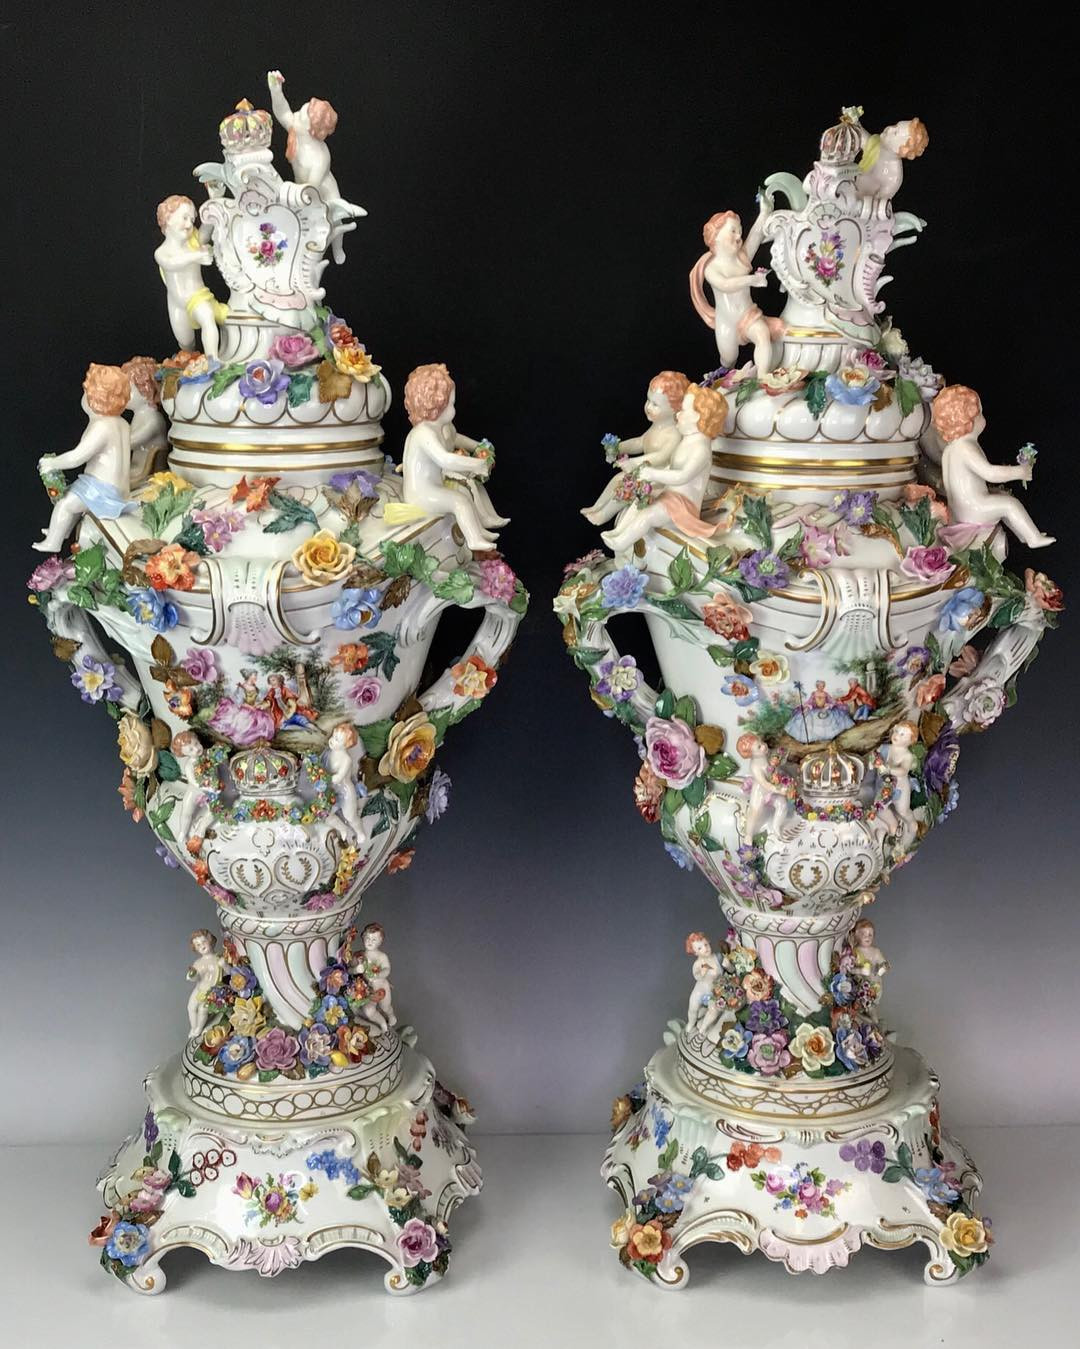 middle kingdom porcelain vases of louvreantiques hash tags deskgram intended for pair od dresden porcelain vases 40 high